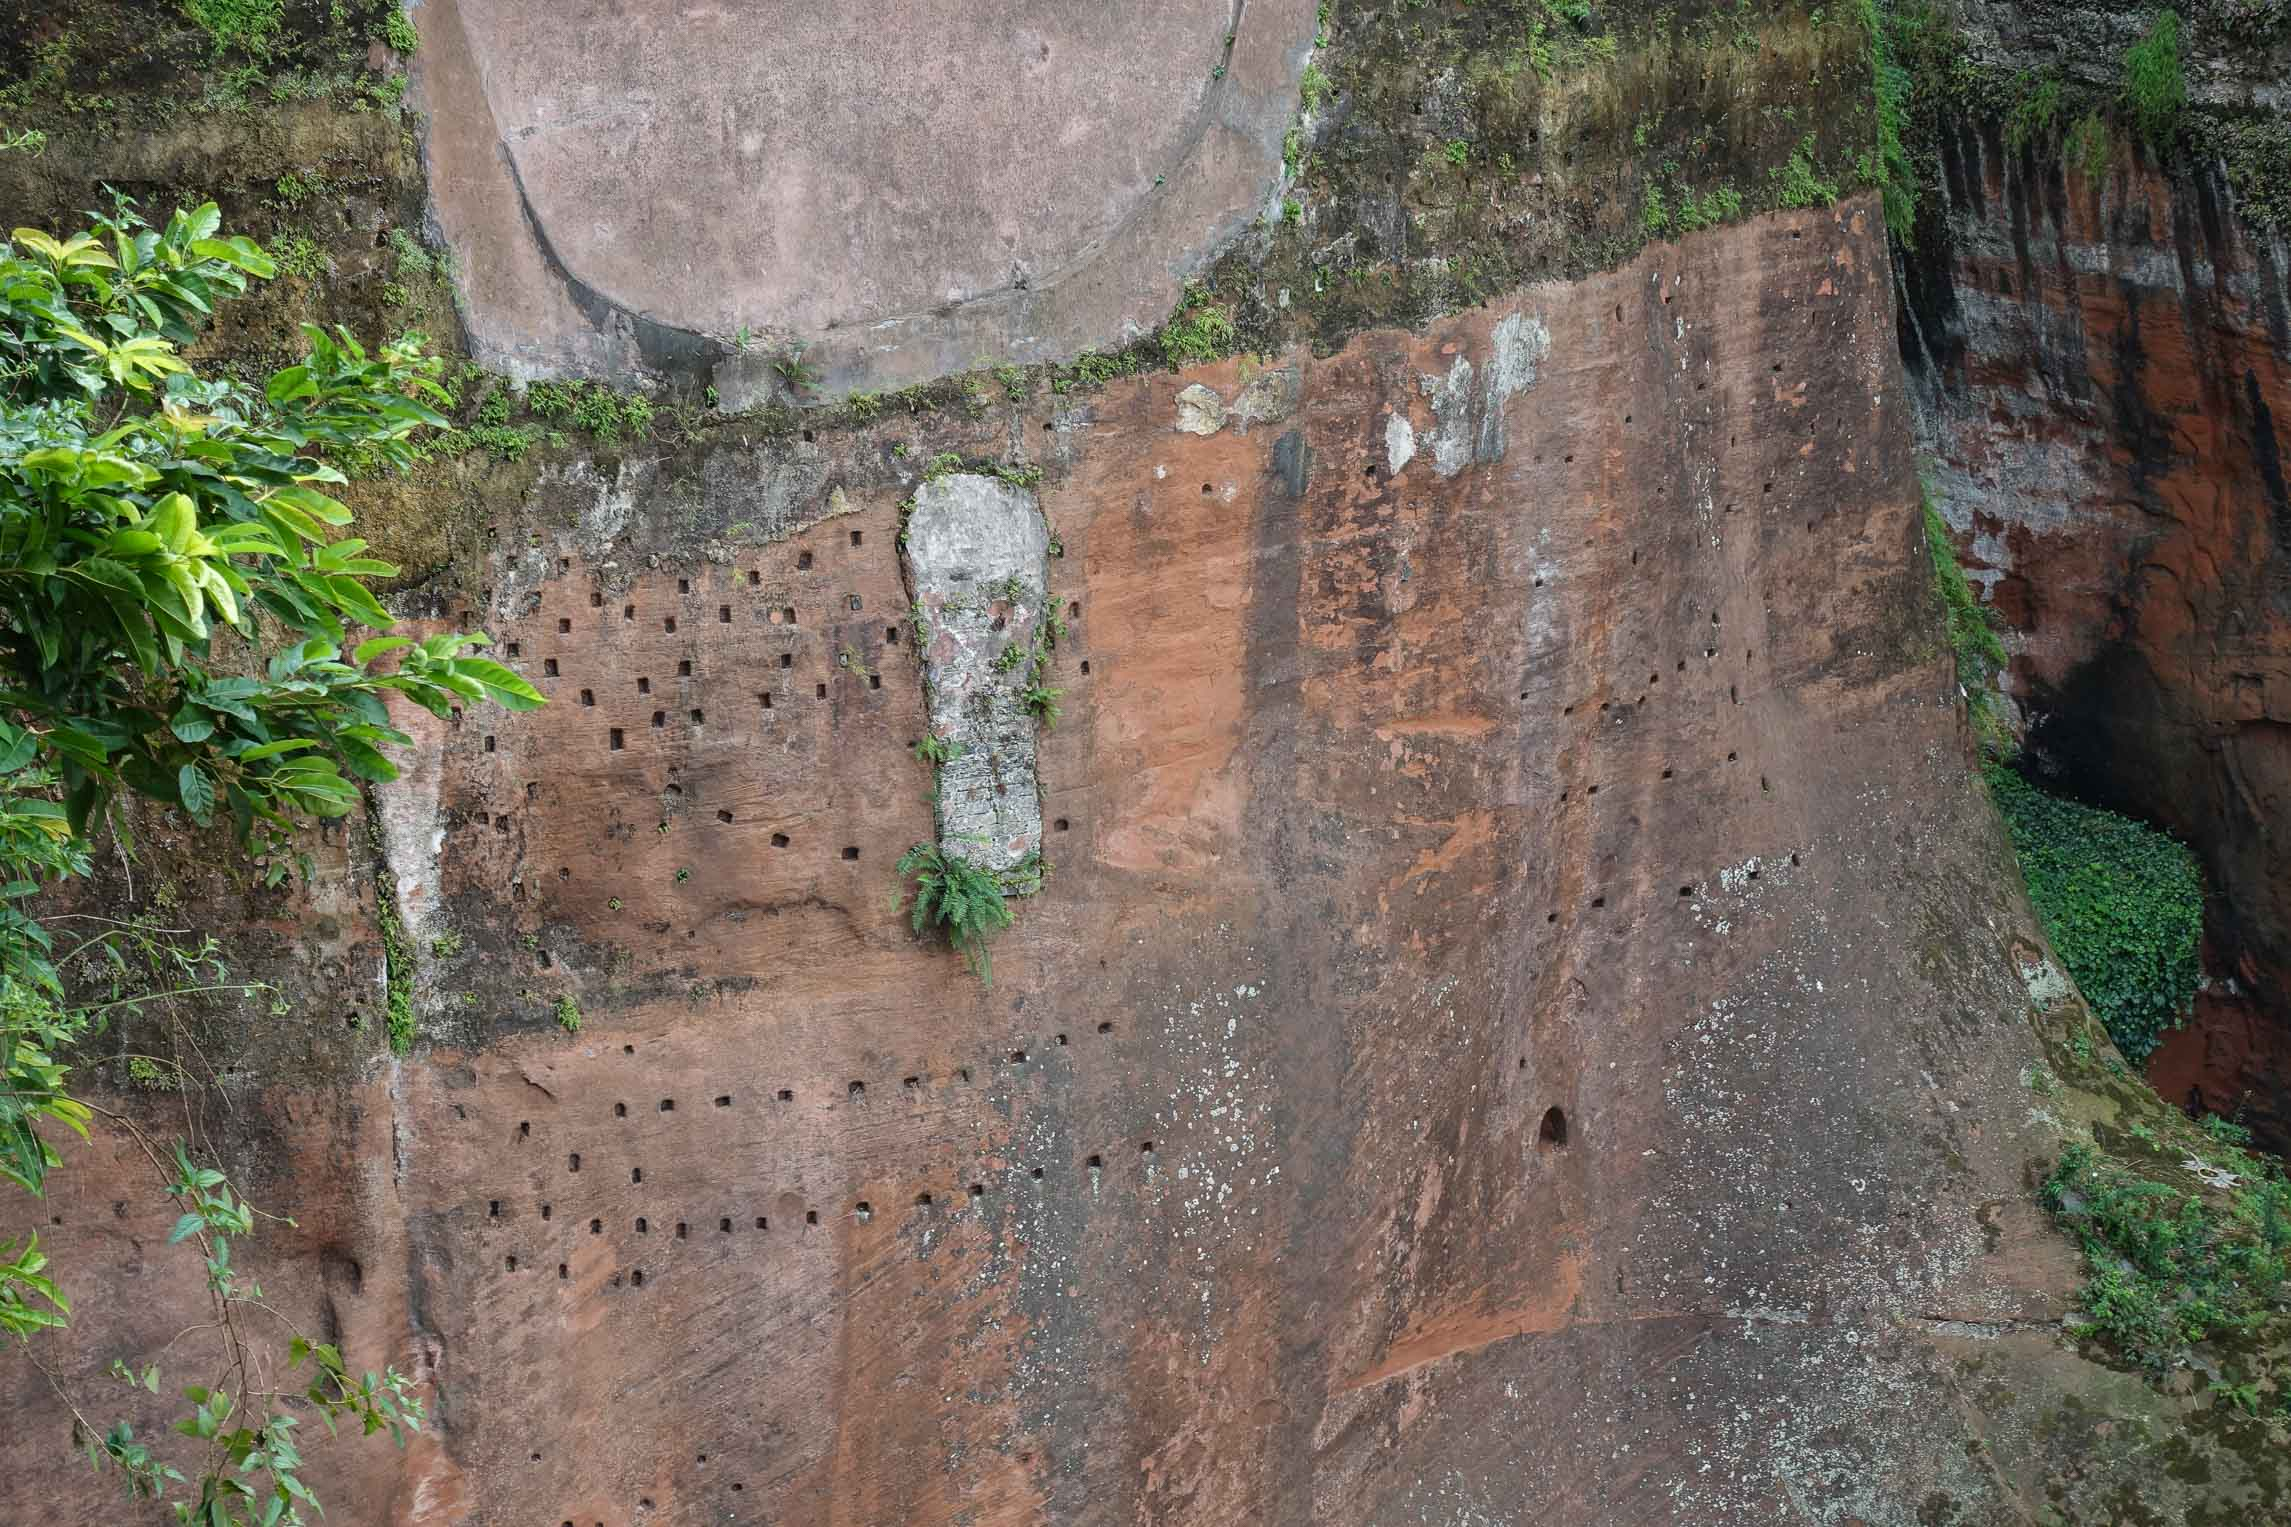 Drainage system in Leshan Giant Buddha